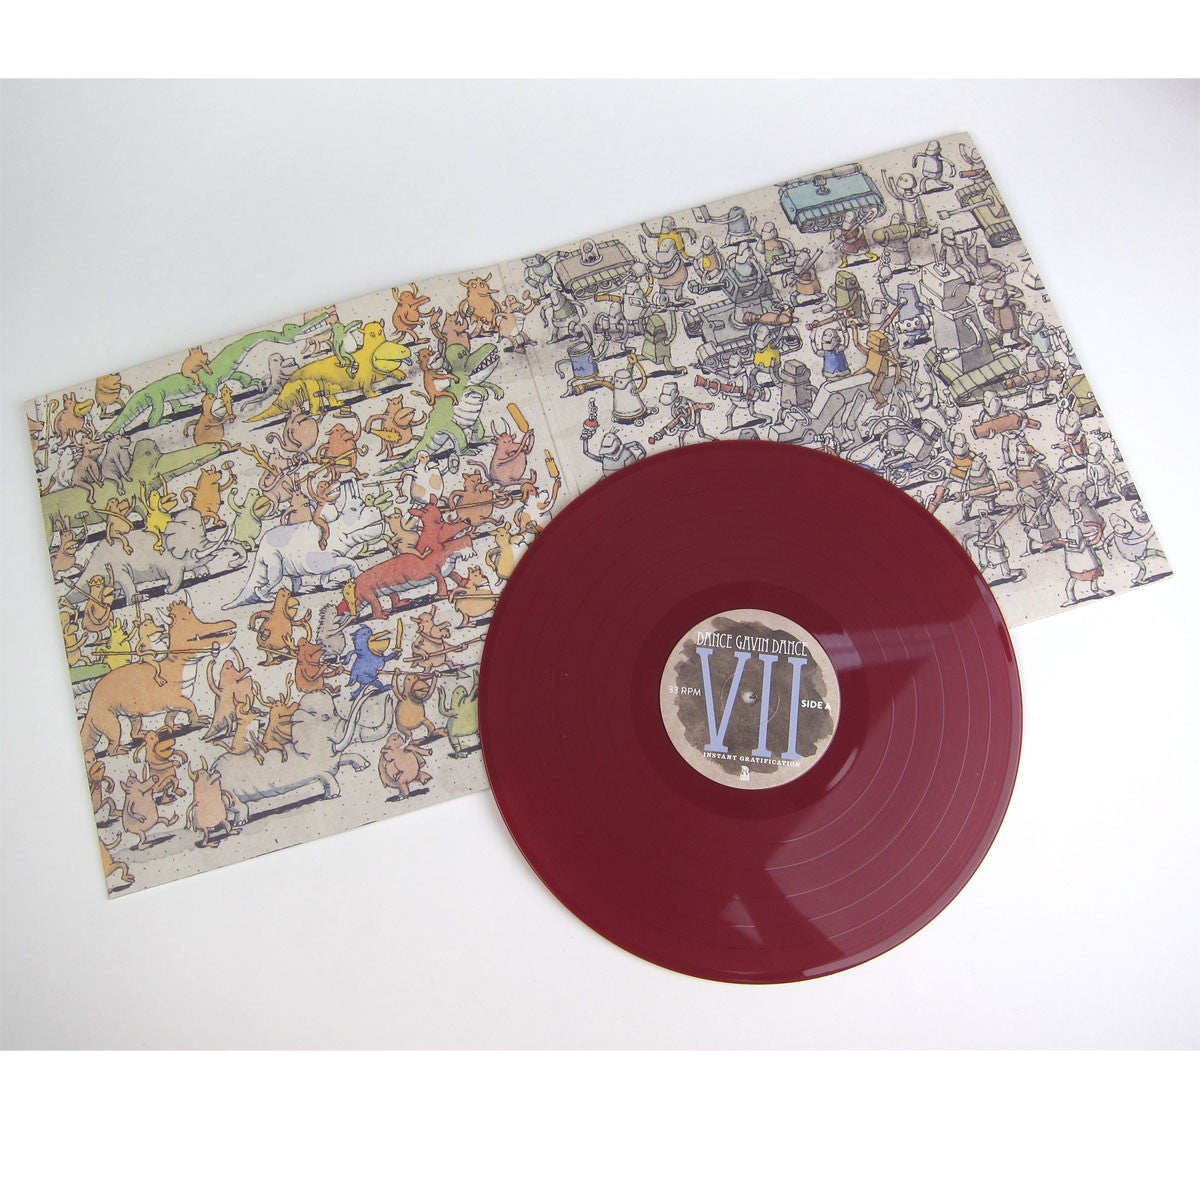 Dance Gavin Dance: Instant Gratification (Colored Vinyl) Vinyl LP+CD